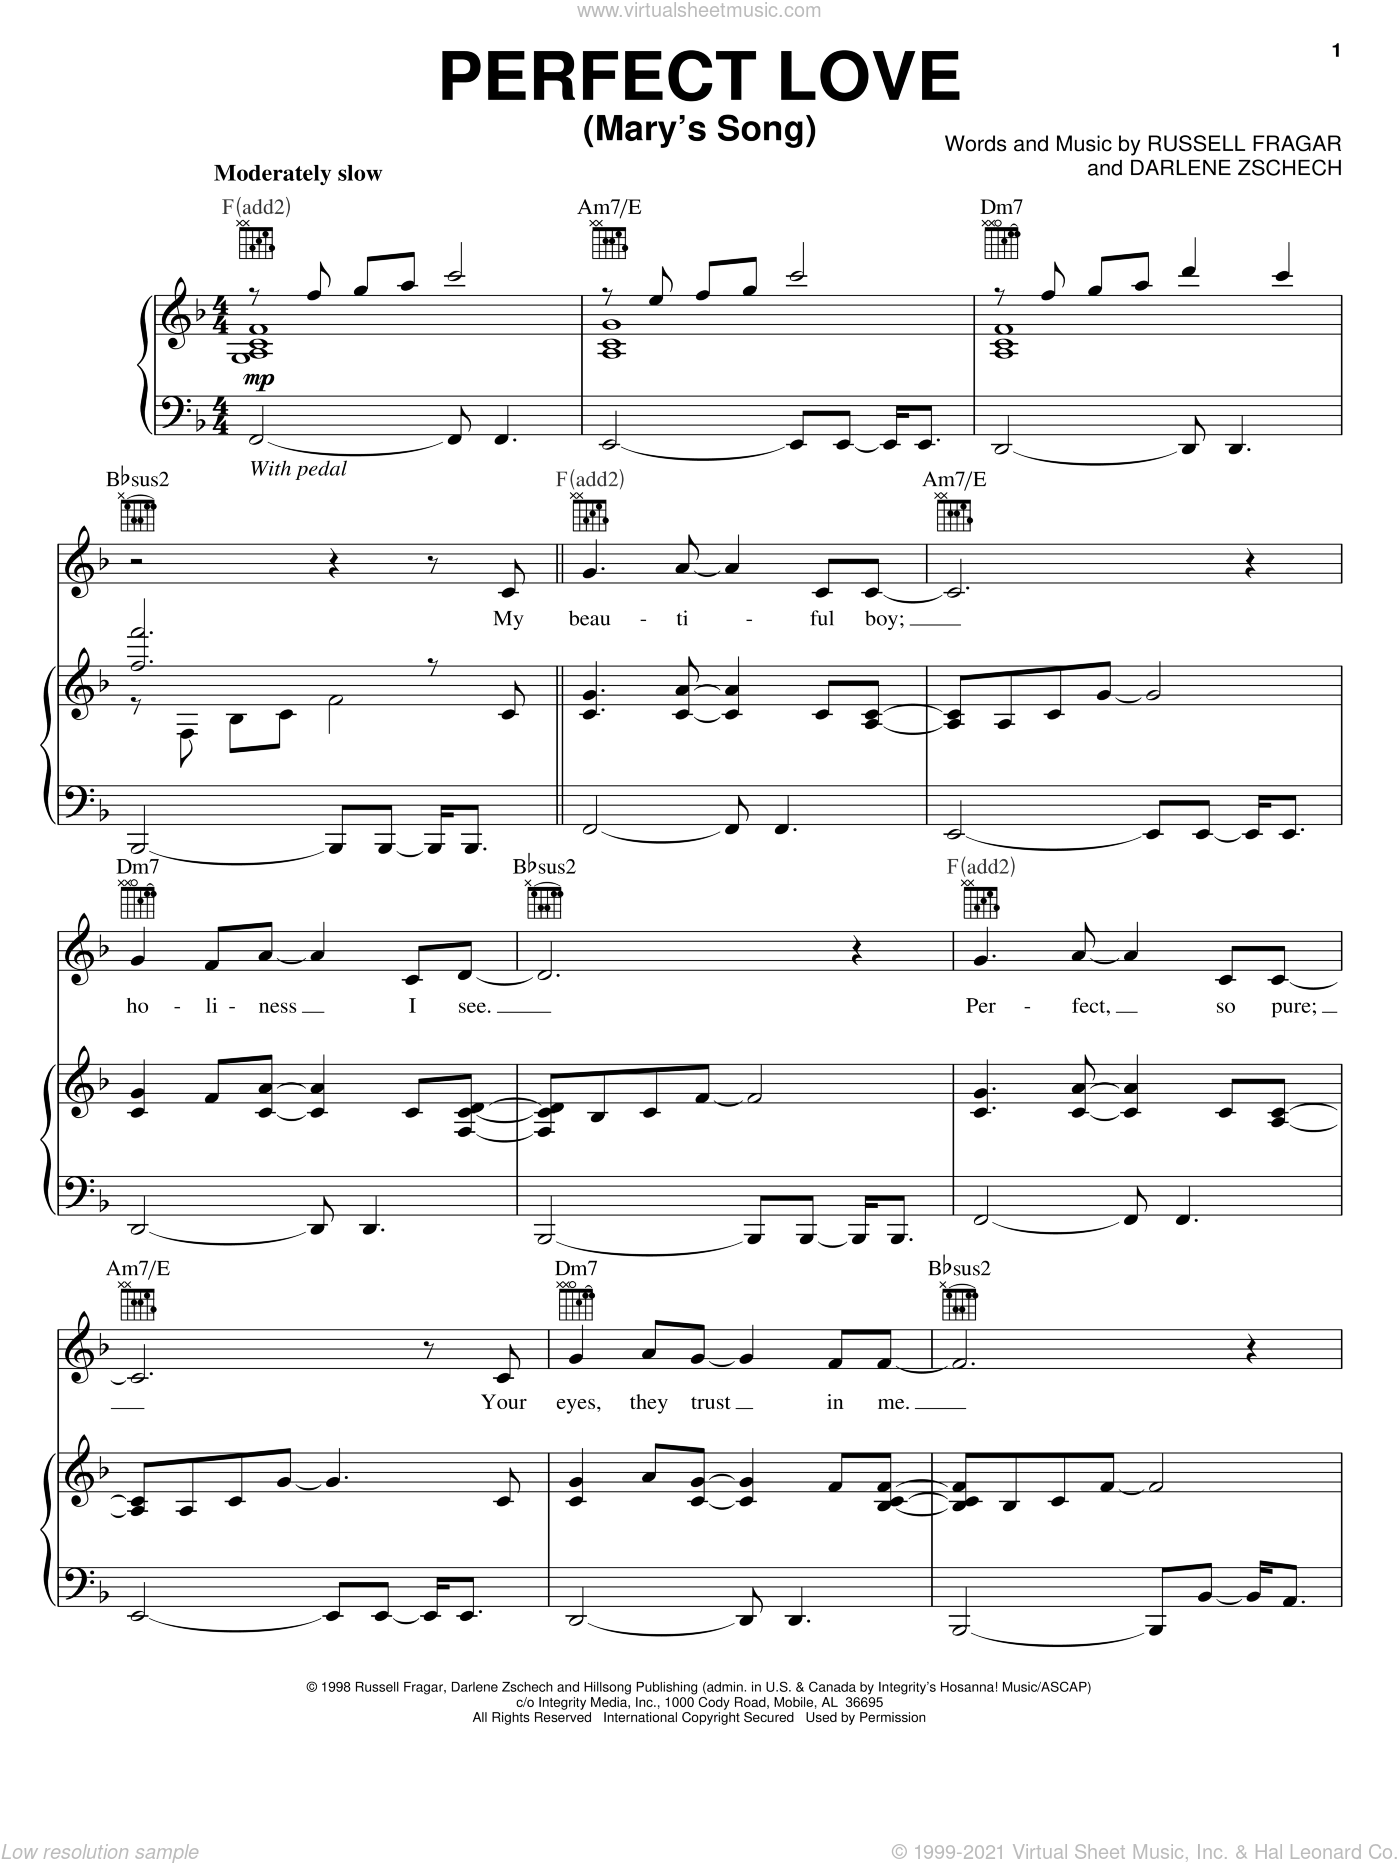 Perfect Love (Mary's Song) sheet music for voice, piano or guitar by Darlene Zschech and Russell Fragar, intermediate skill level